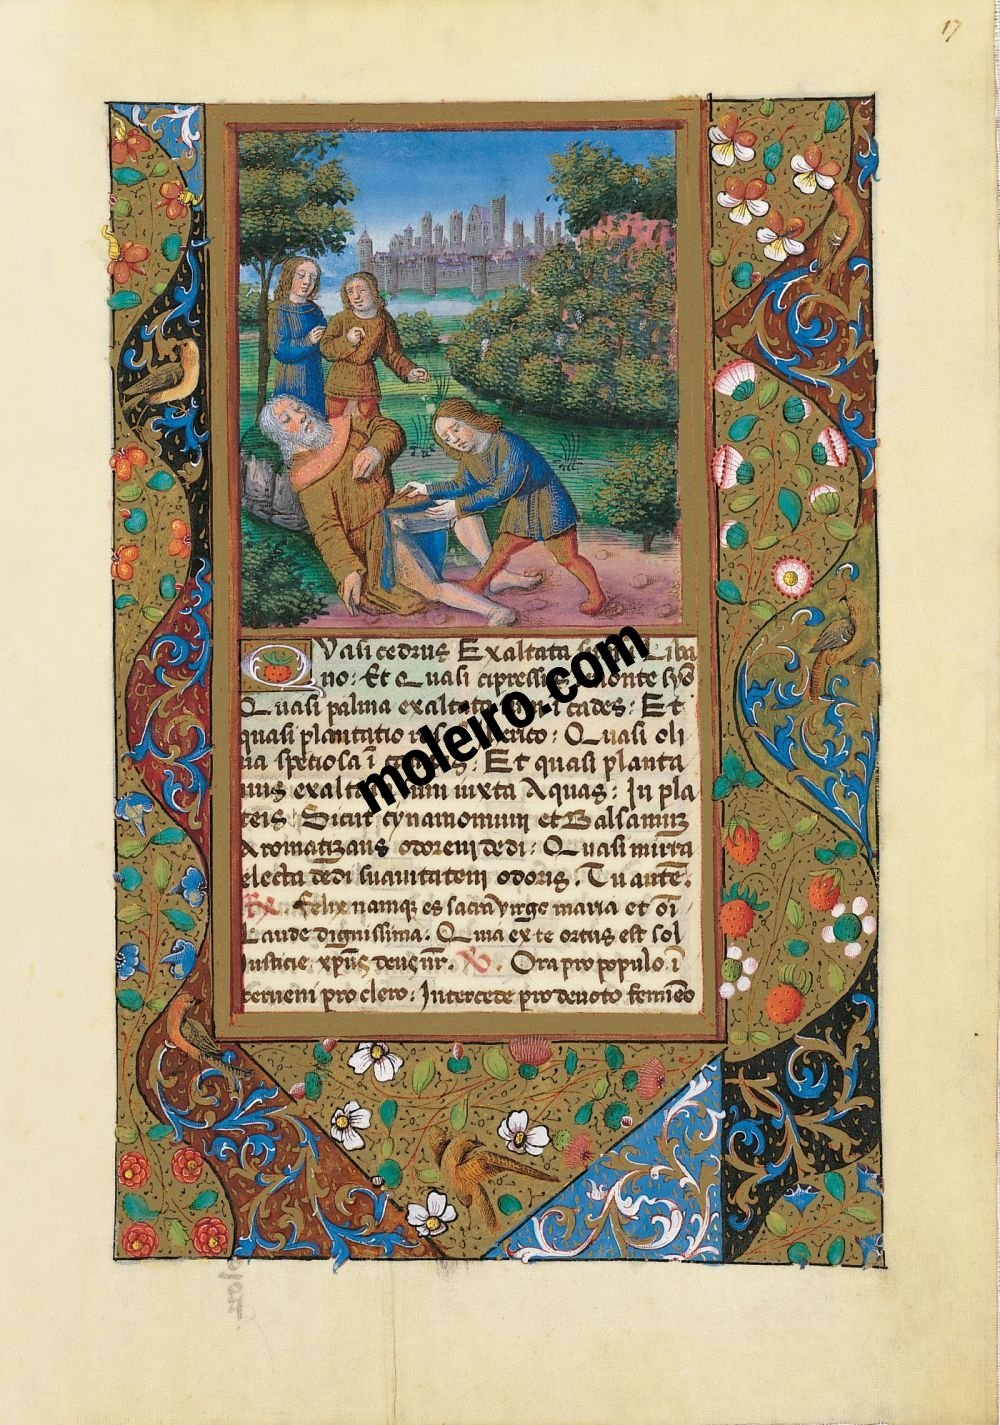 Book of Hours of Louis of Orleans f. 17r. The derision of Noah